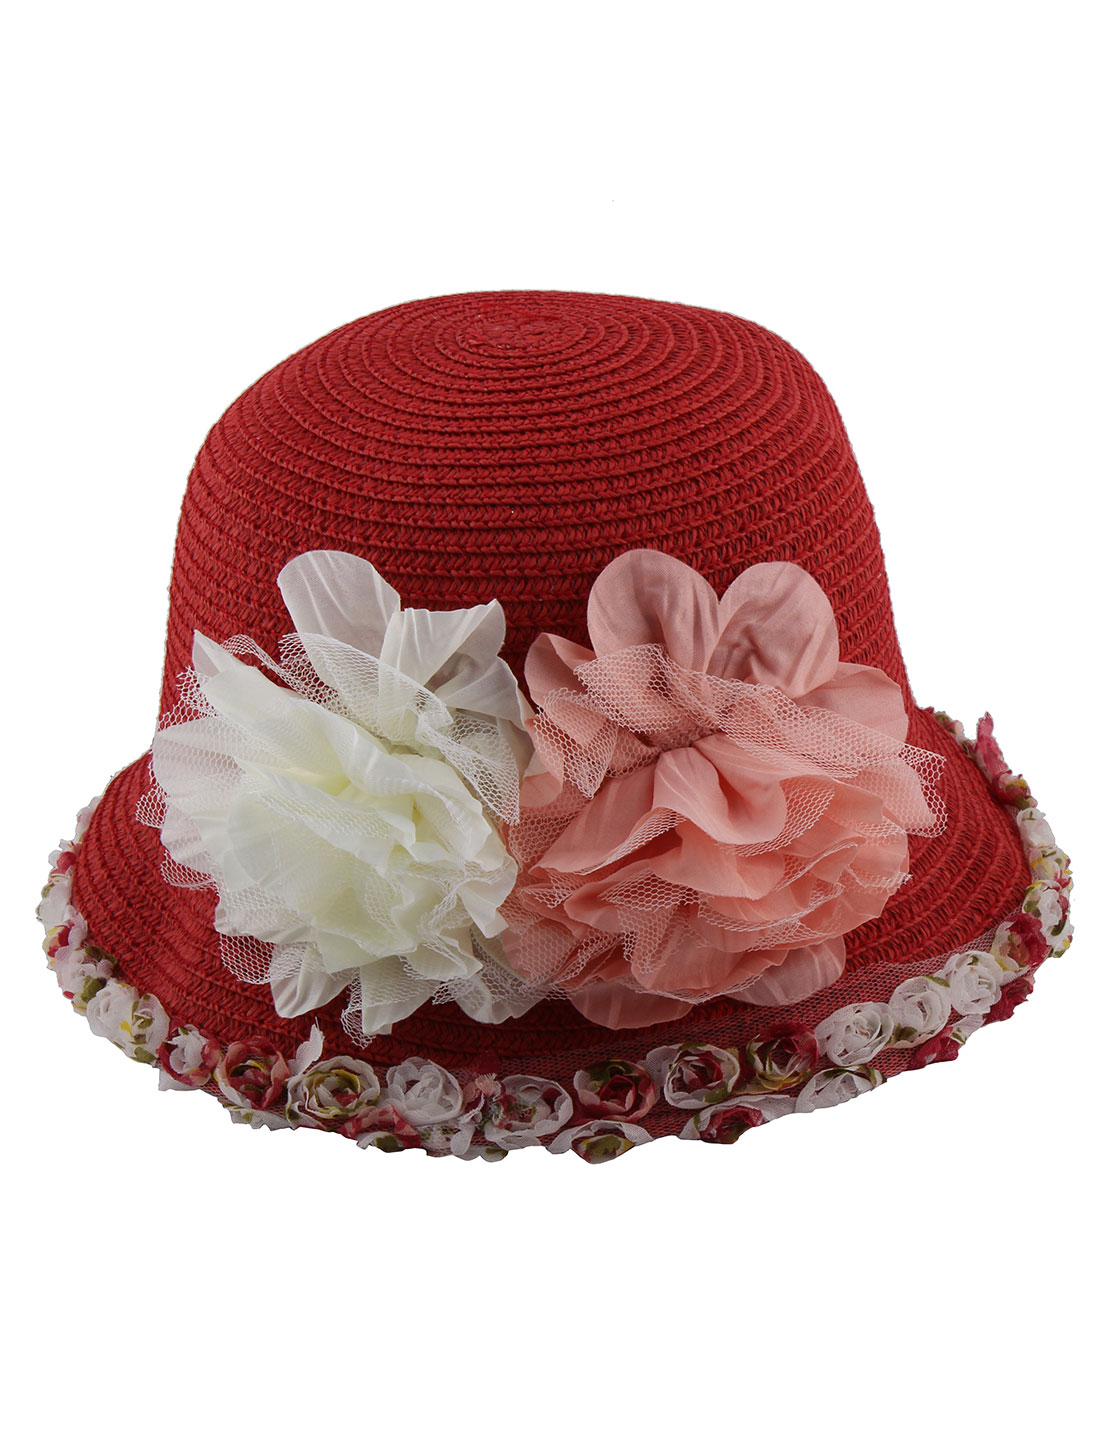 Ladies Straw Woven Summer Outdoors Flowers Decor Rolled Brim Sun Hat Cap Red